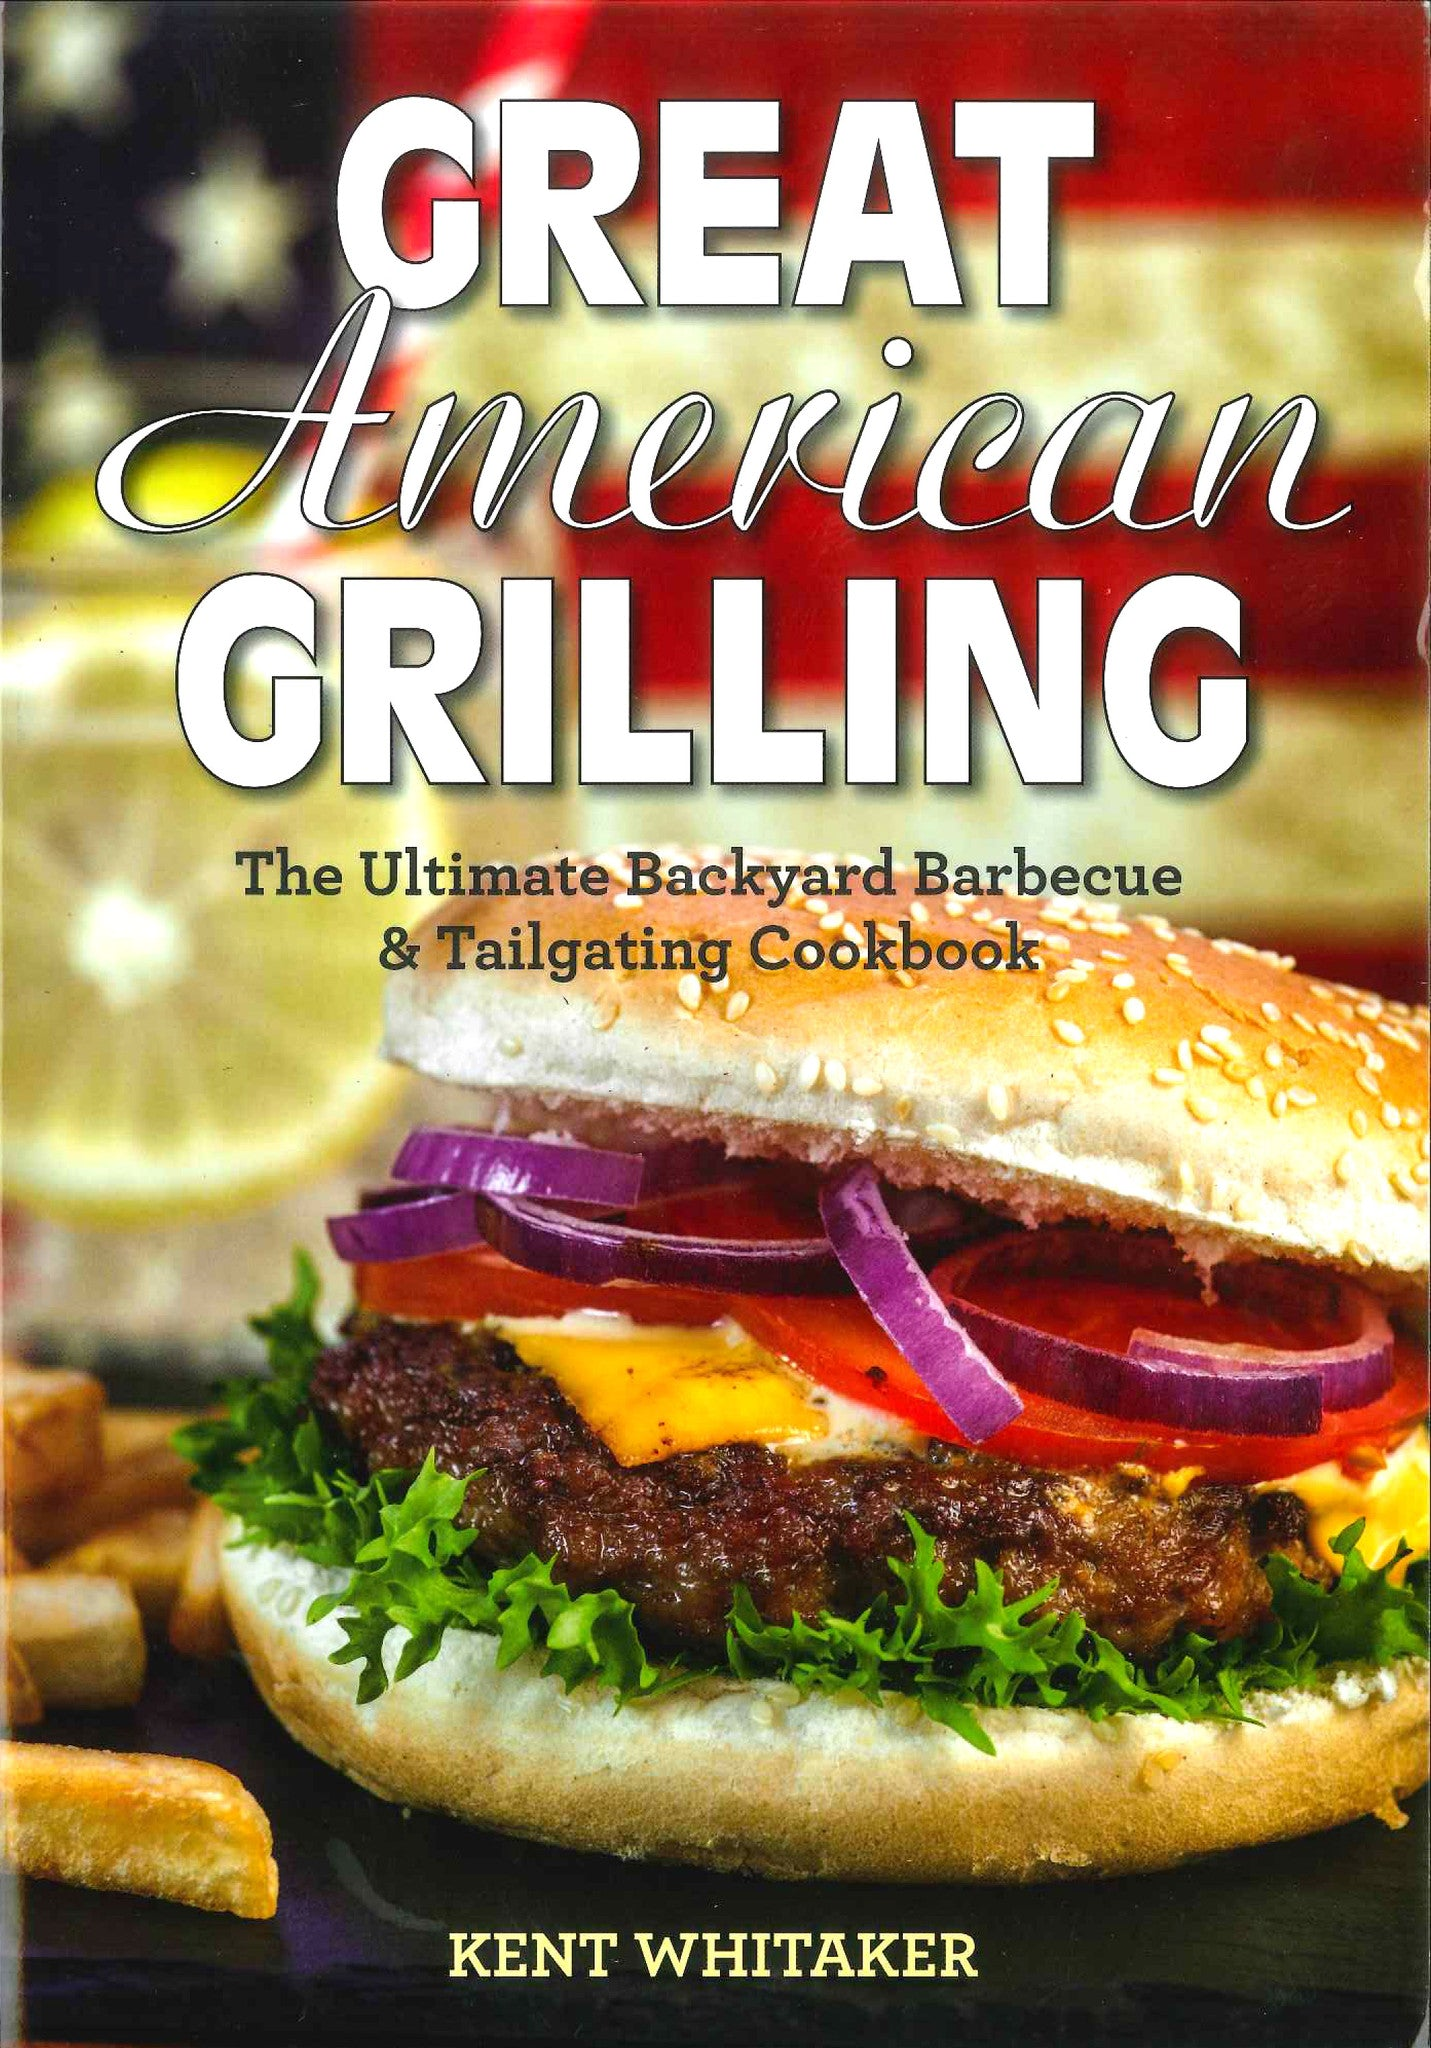 Great American Grilling by Kent Whitaker - Signed!